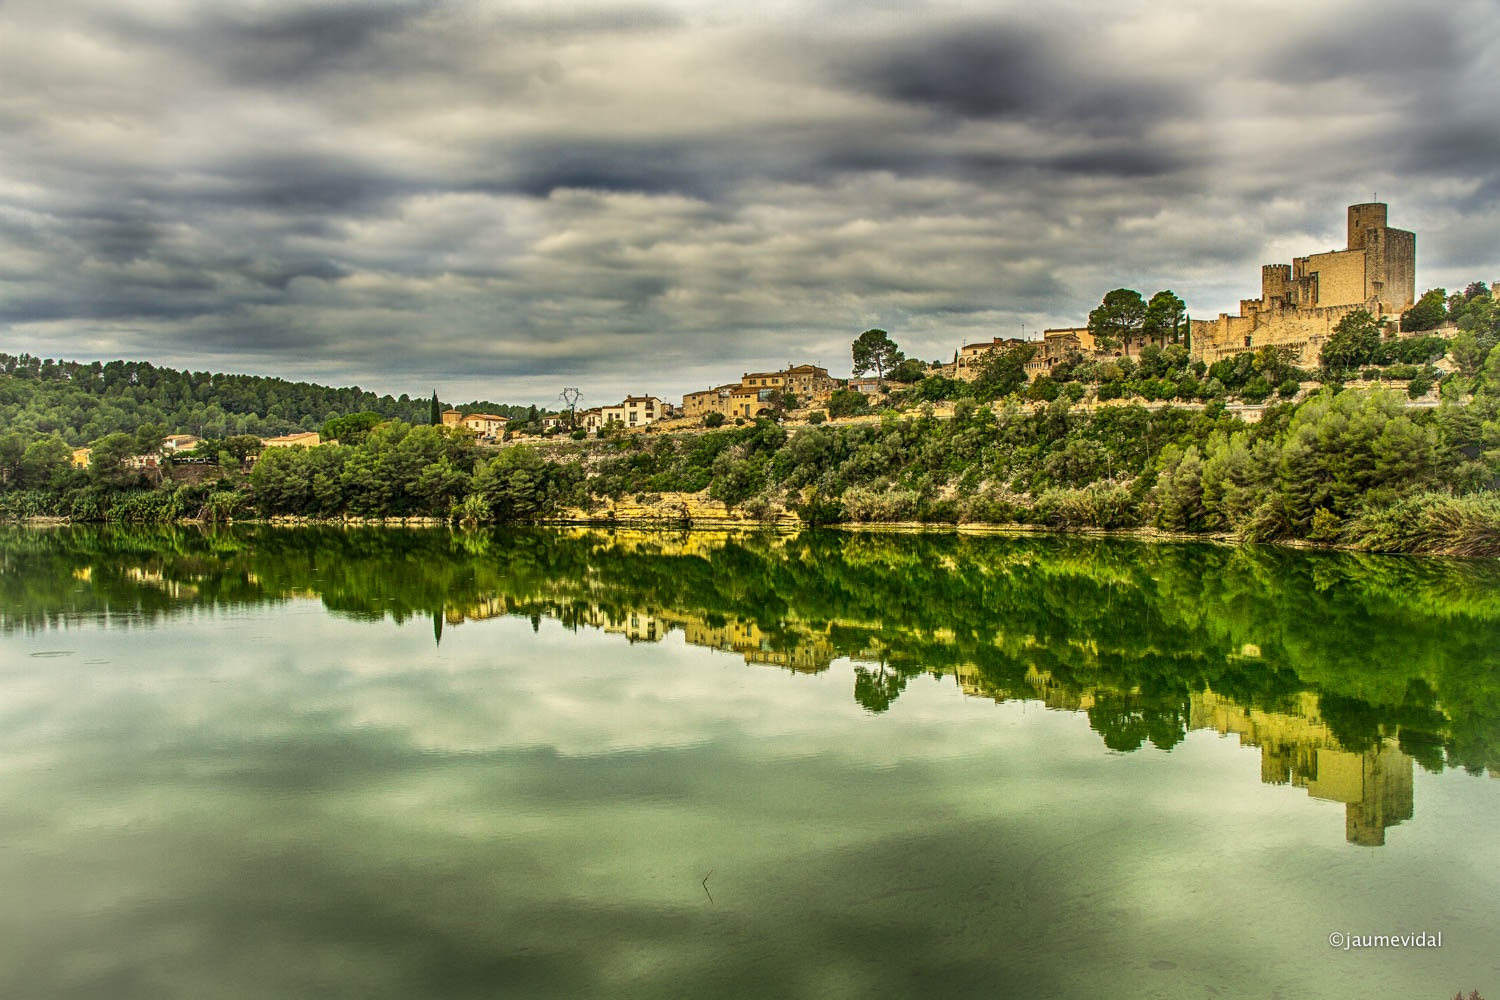 Reflections of the village of Castellet in the marsh of Foix by JaumeVidal